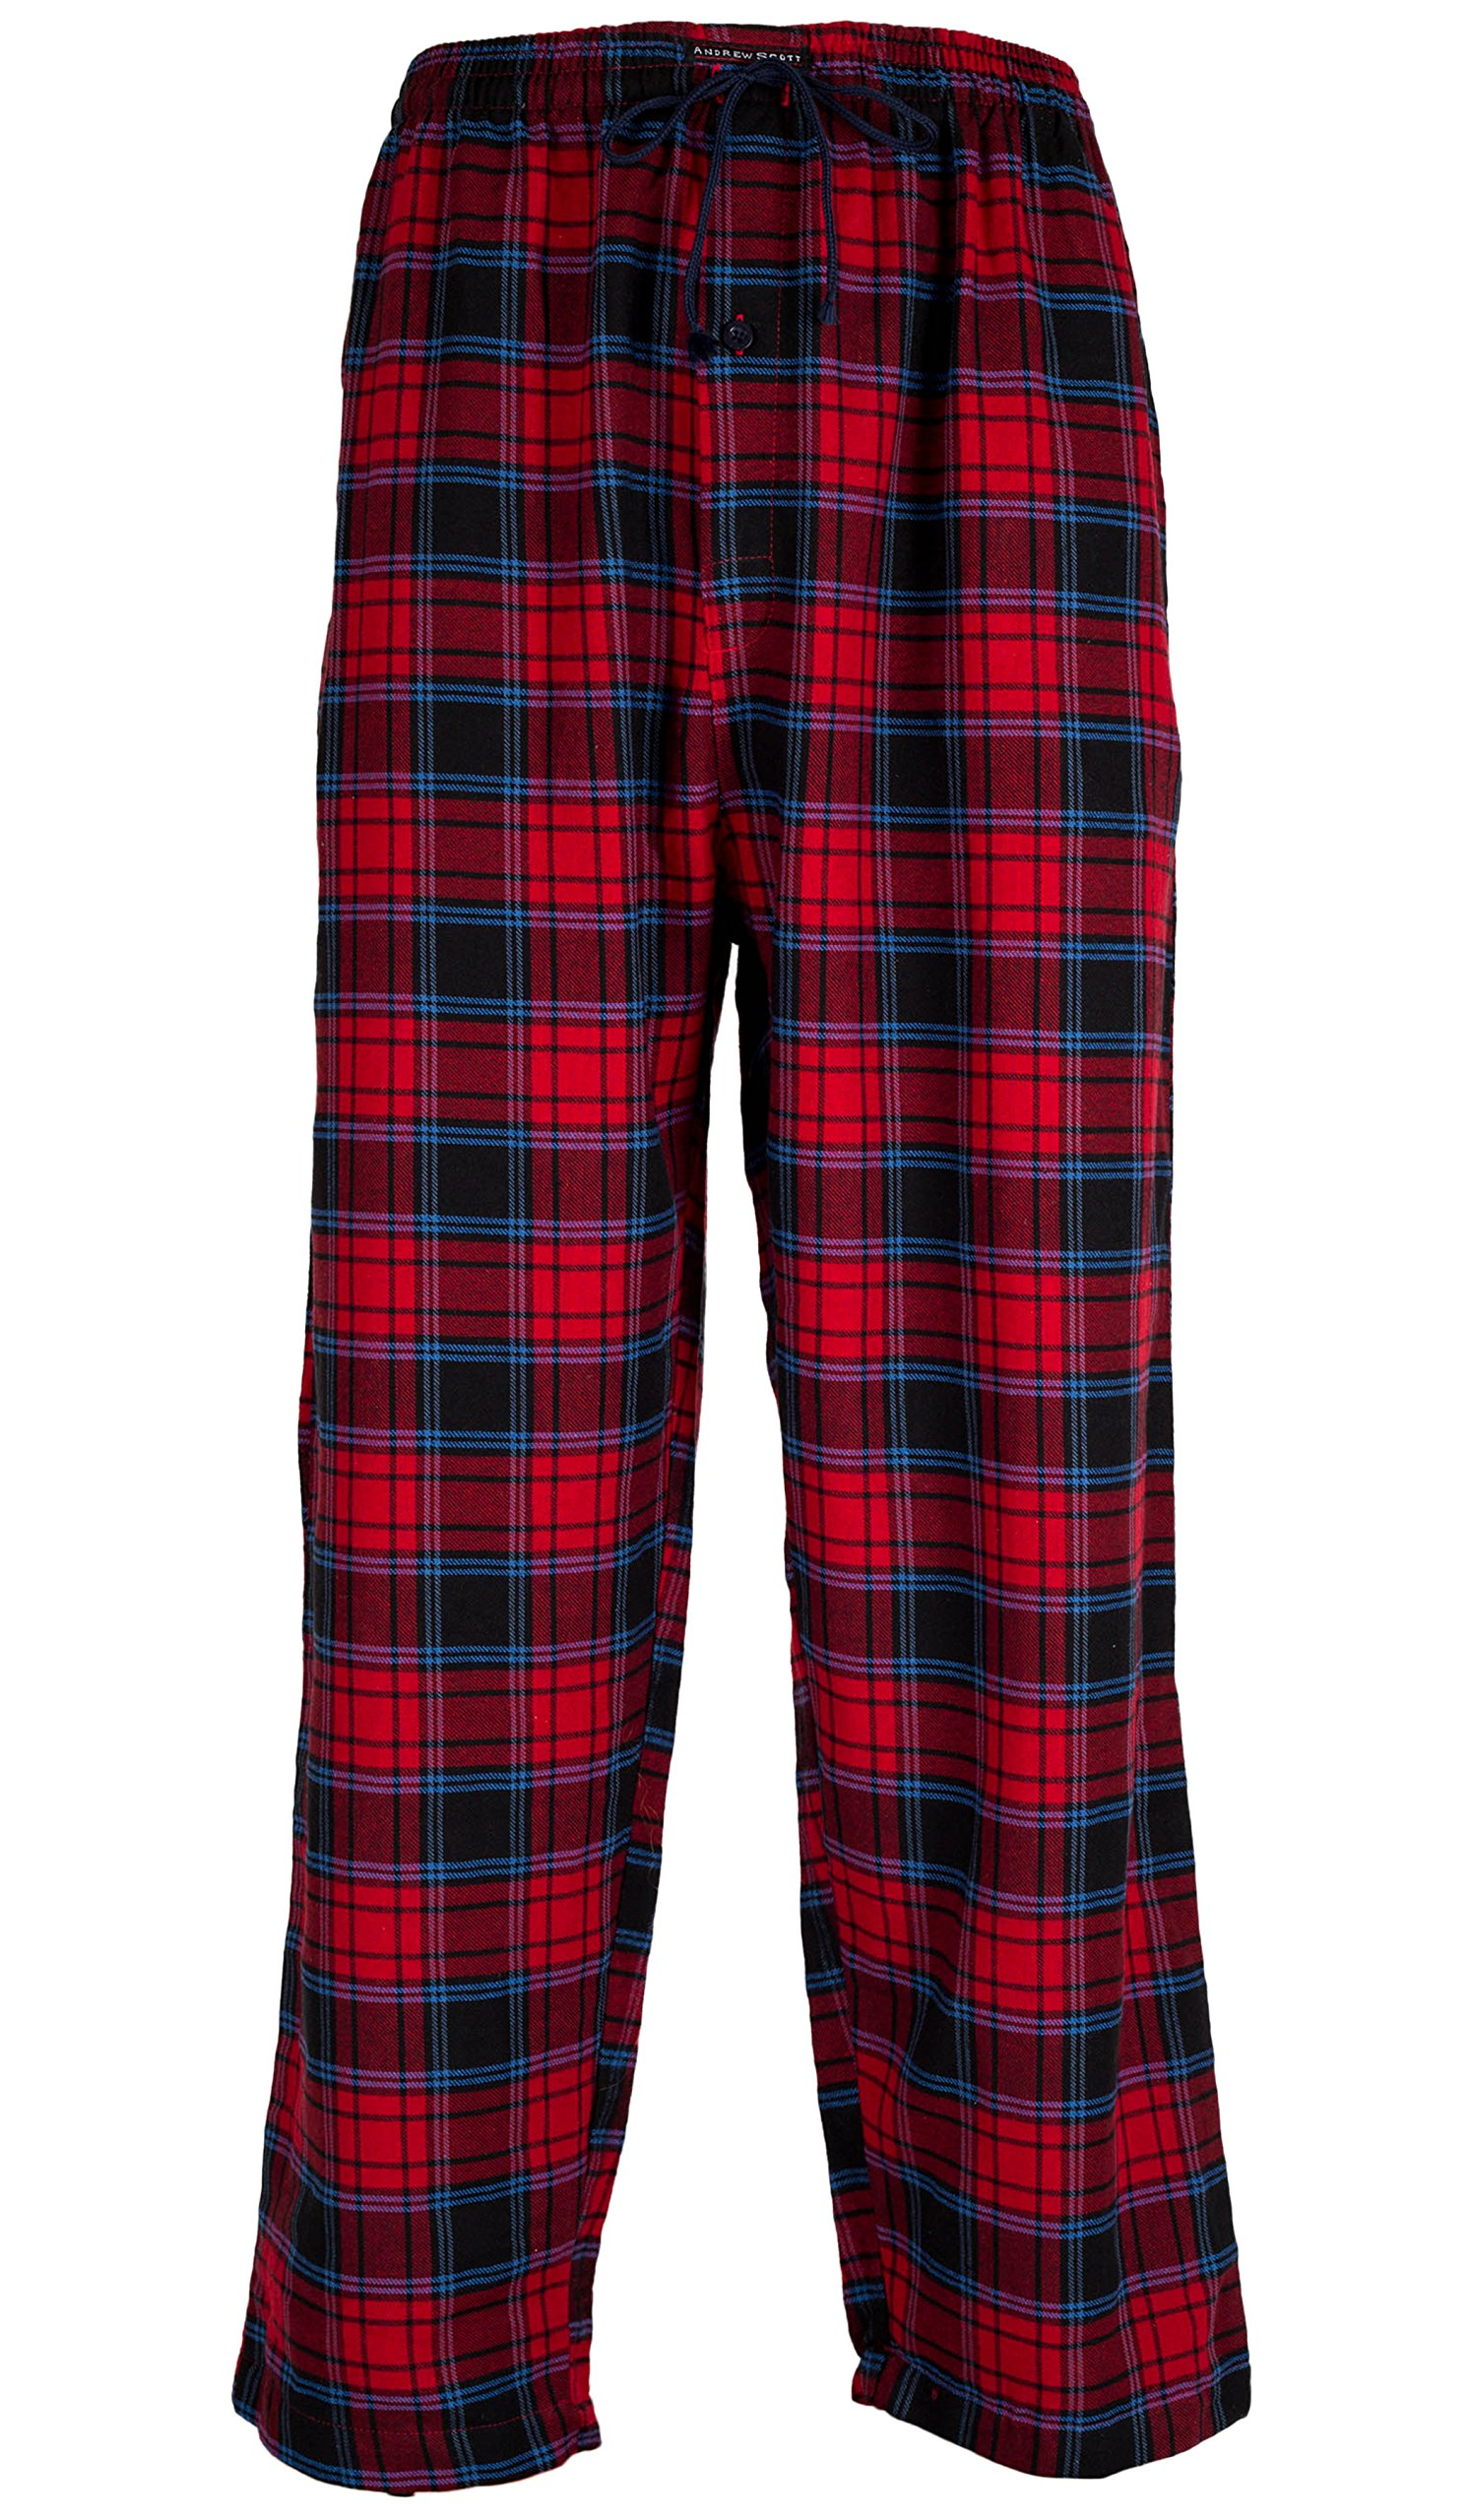 Andrew Scott Men's 3 Pack Cotton Flannel Fleece Brush Pajama Sleep & Lounge Pants (XL/40-42, 3 Pack - Classic Flannel Assorted Plaids) by Andrew Scott (Image #4)